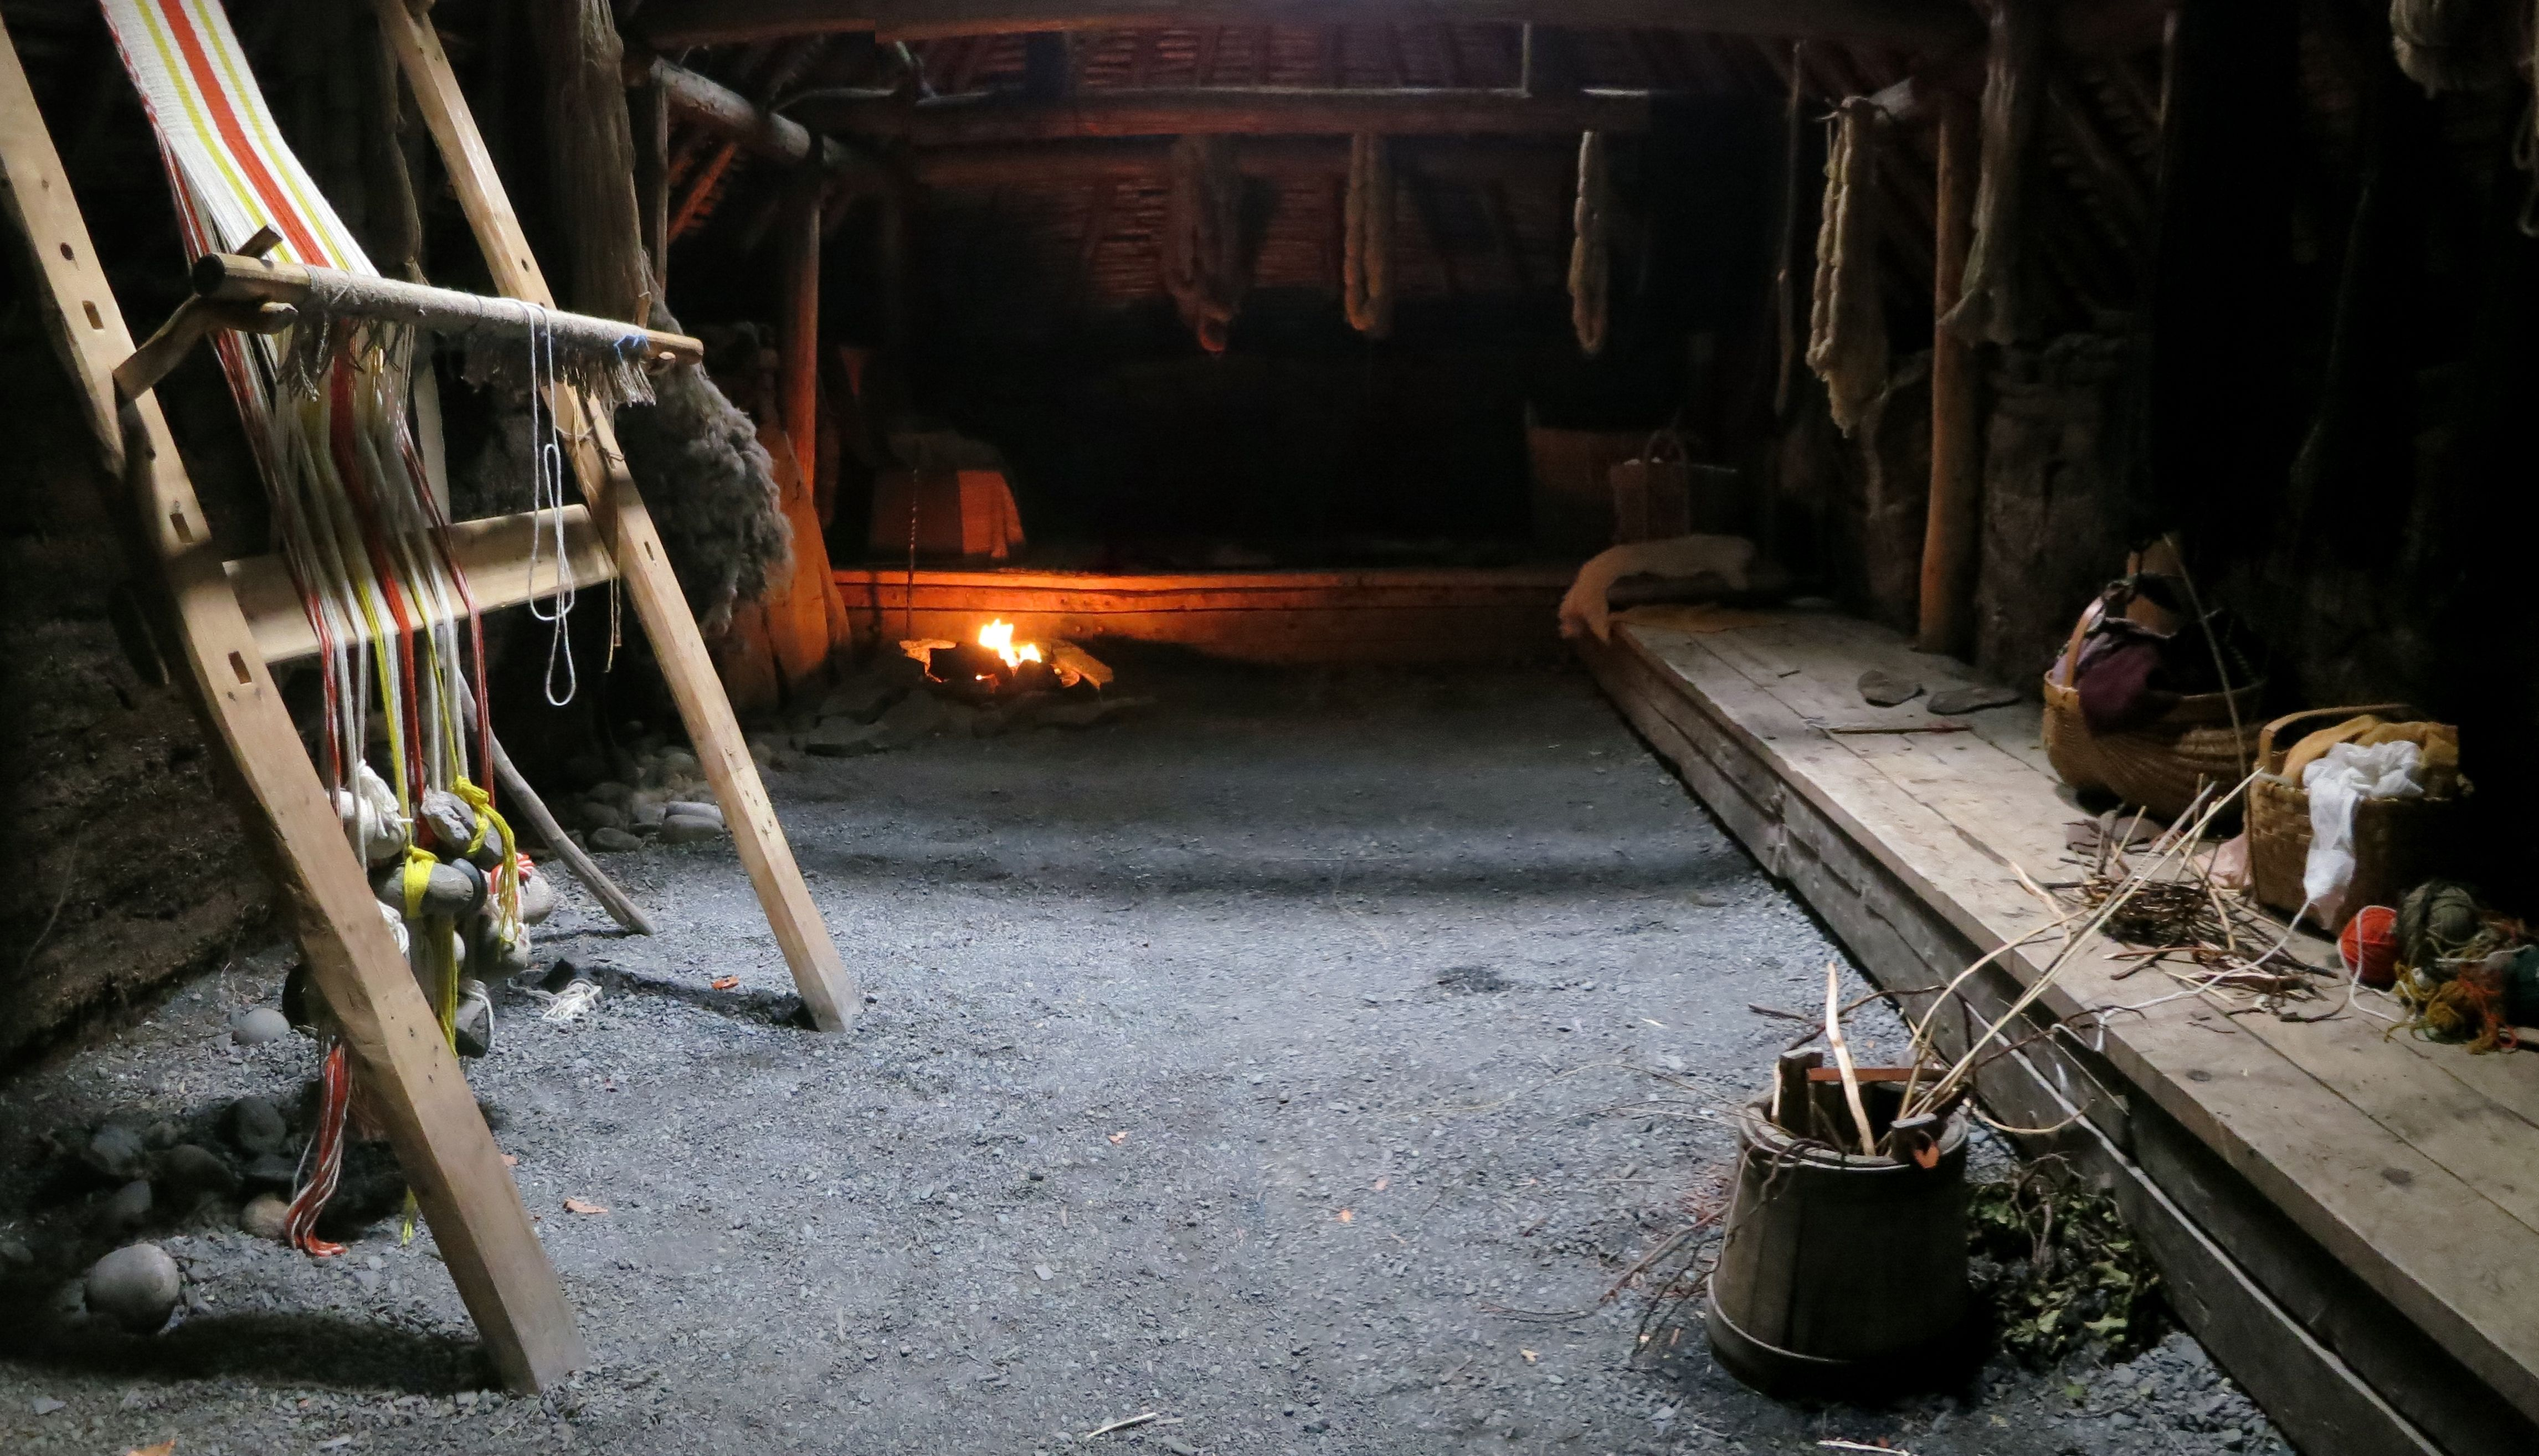 Interior of the Reconstruction of the Big Hall at l'Anse aux Meadows